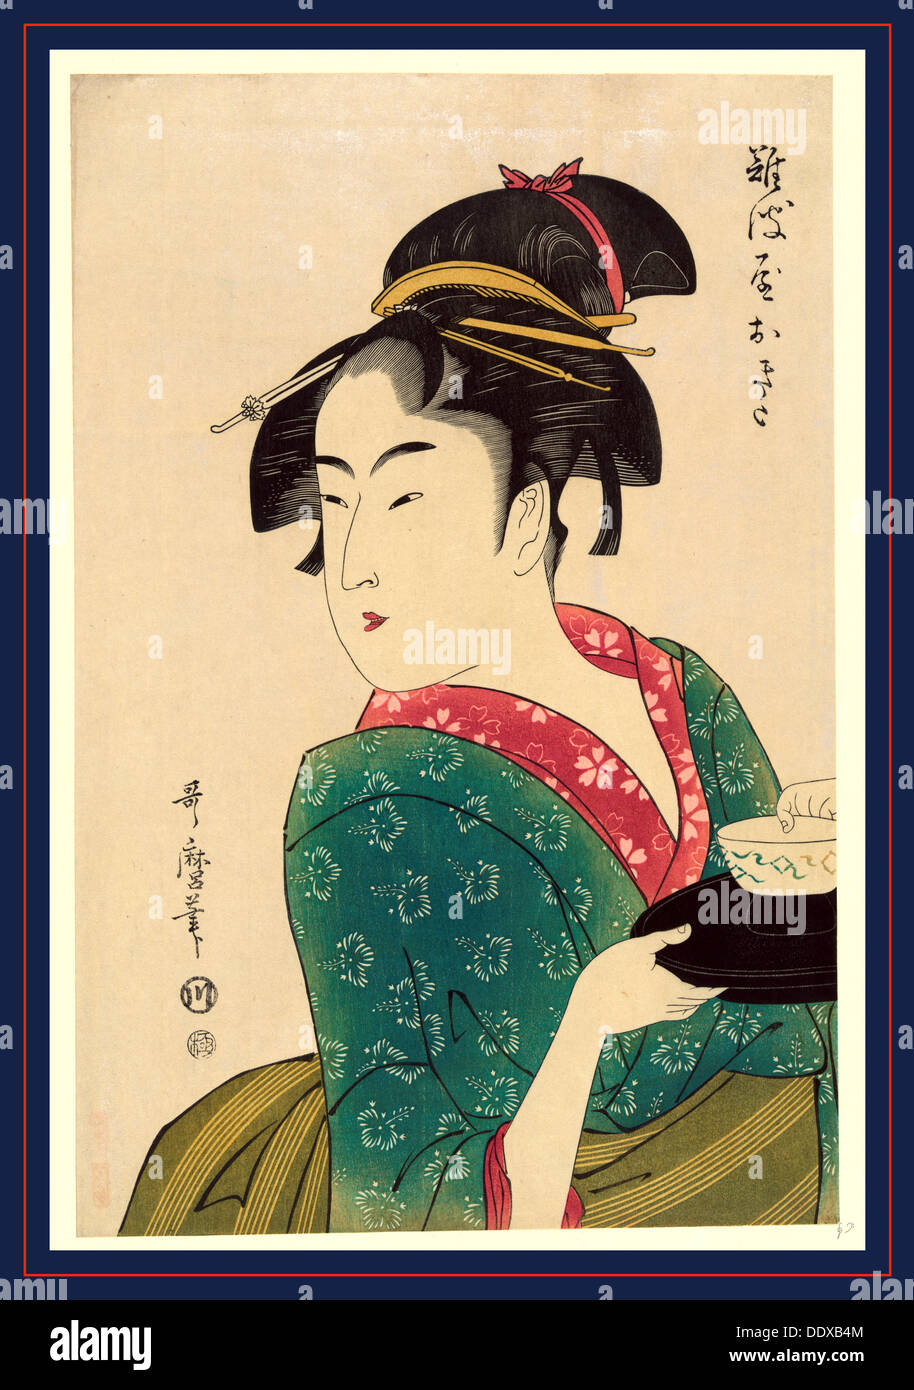 Naniwaya okita, Okita of Naniwa-ya. [1793, printed later], 1 print : woodcut, color., Print shows Naniwaya Okita Stock Foto